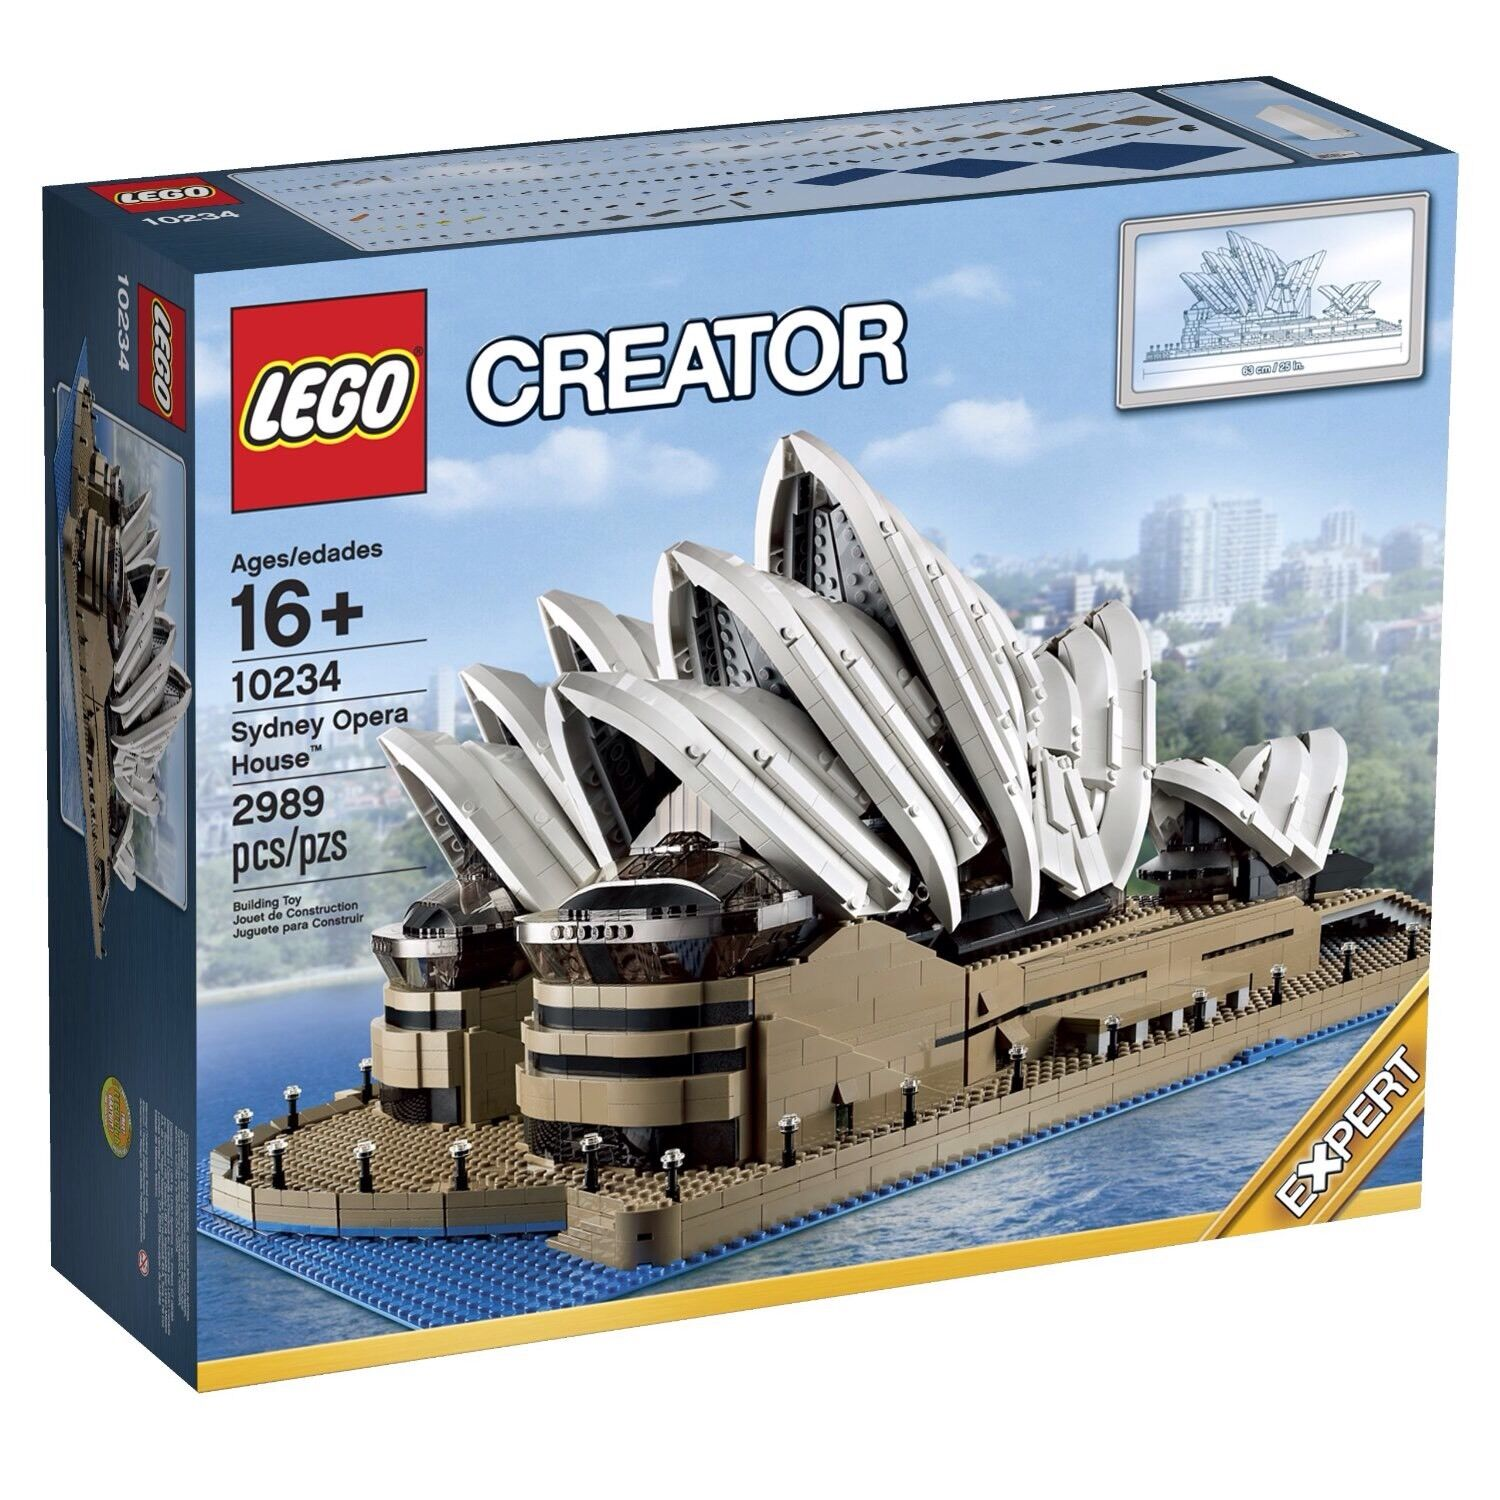 LEGO Sydney Opera House - CREATOR - 10234 - NEW & SEALED - 2989 Pieces Retired